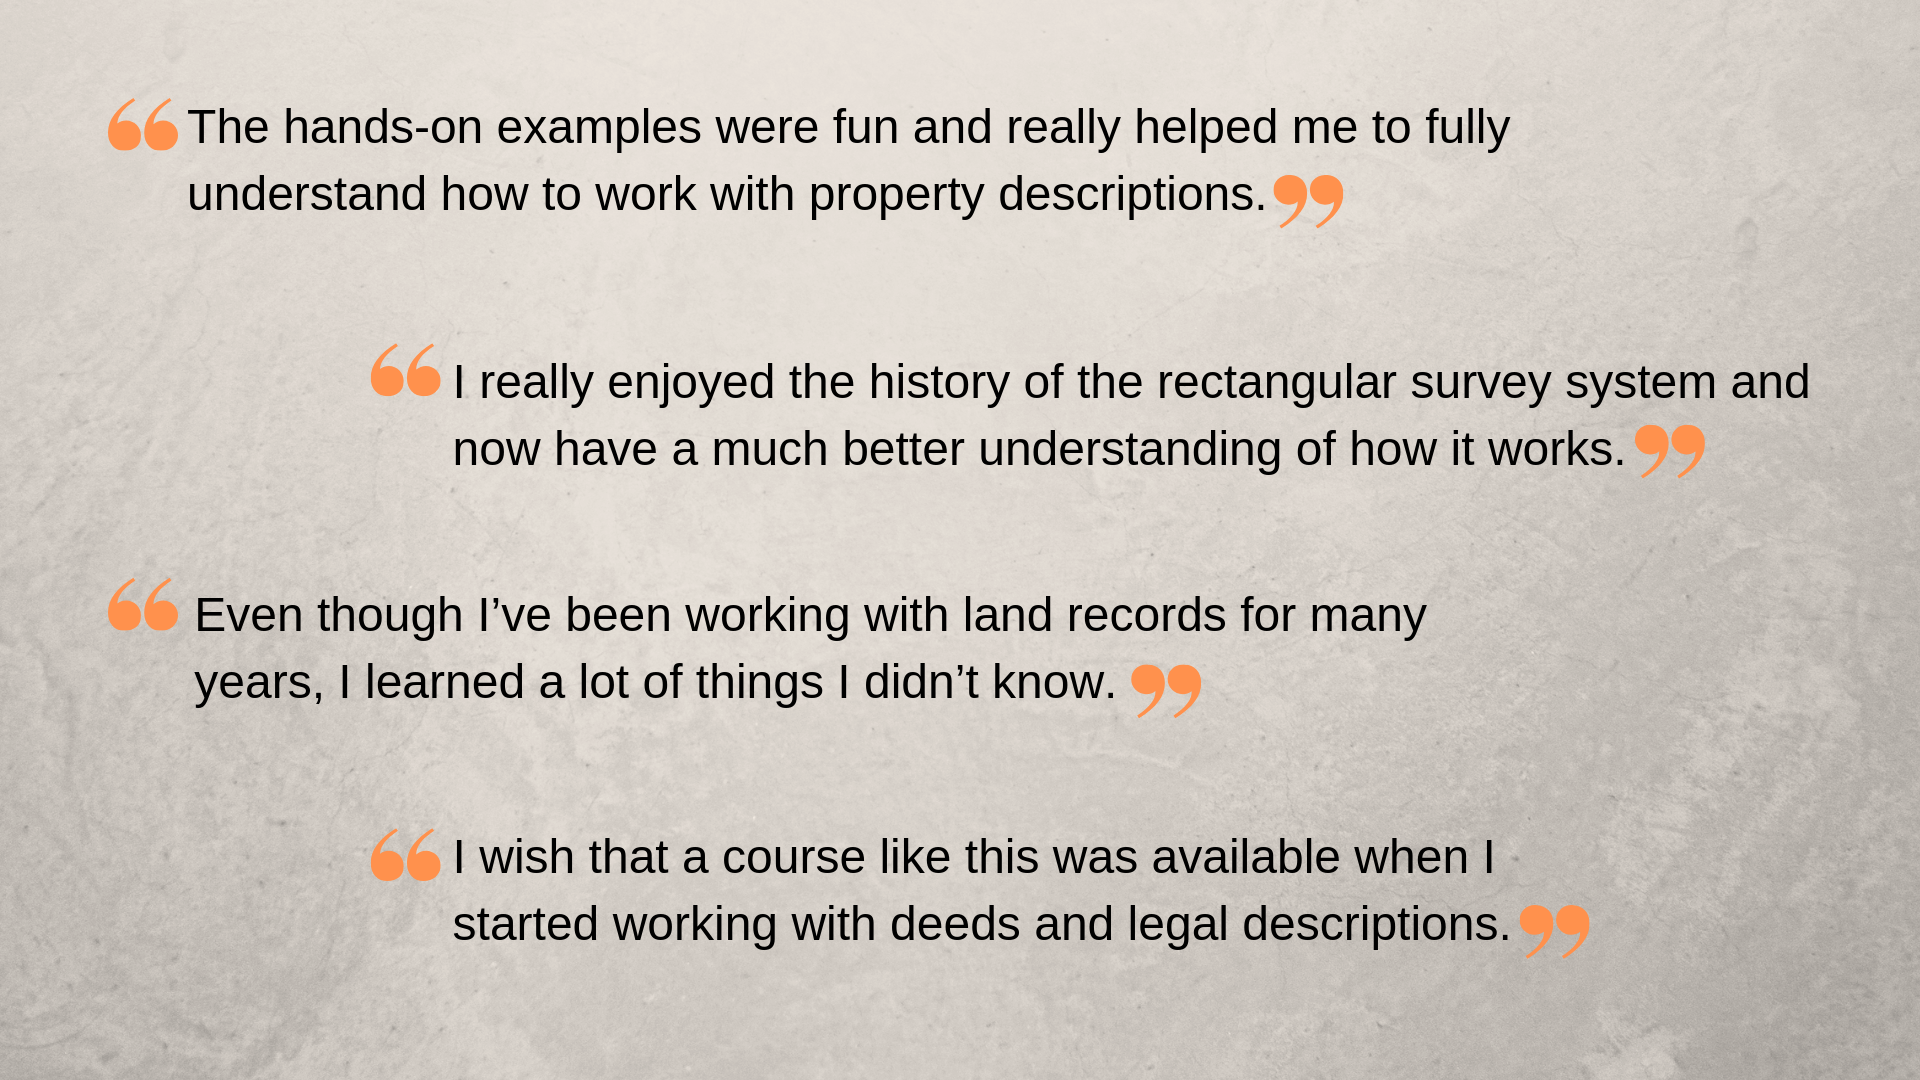 """I really enjoyed the history of the rectangular survey system and now have a much better understanding of how it works."" ""The hands-on examples were fun and really helped me to fully understand how to work with property descriptions.""  Even though I've been working with land records for many years, I learned a lot of things I didn't know."" ""I wish that a course like this was available when I started working with deeds and legal descriptions."""